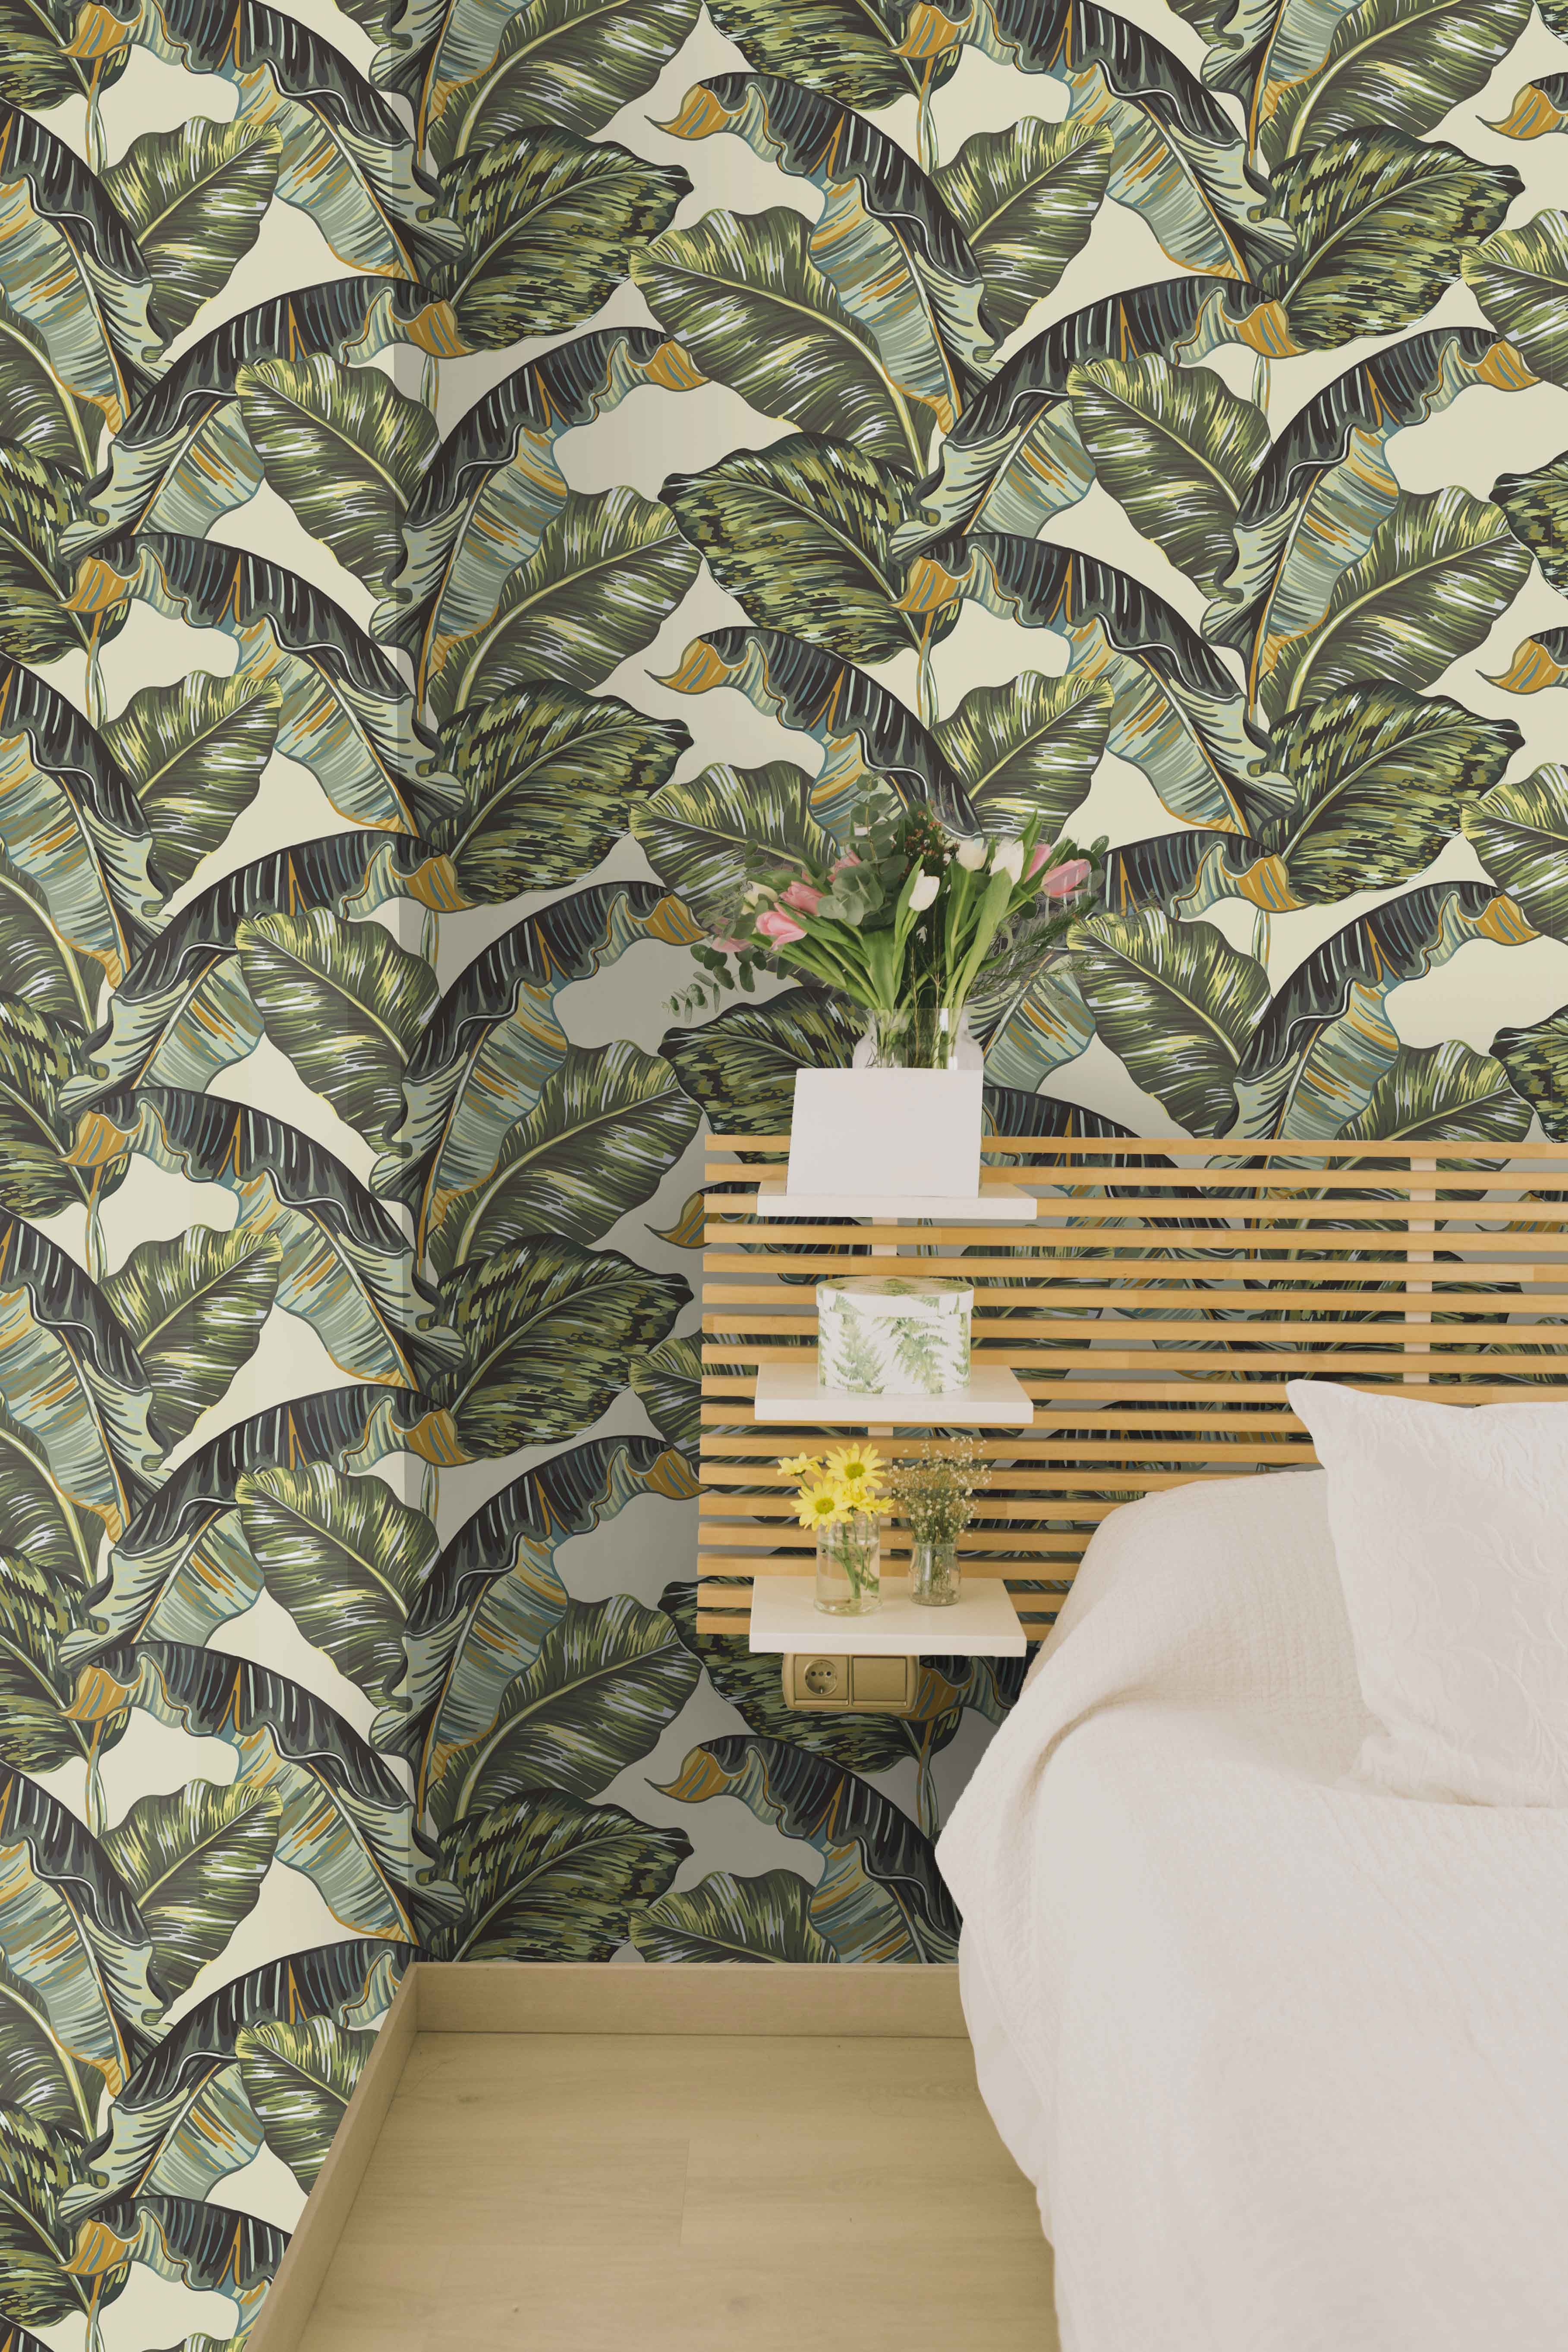 Palms On Beige Wallpaper Removable Peel And Stick Wallpapers Etsy Palm Leaf Wallpaper Tropical Wallpaper Tropical Home Decor